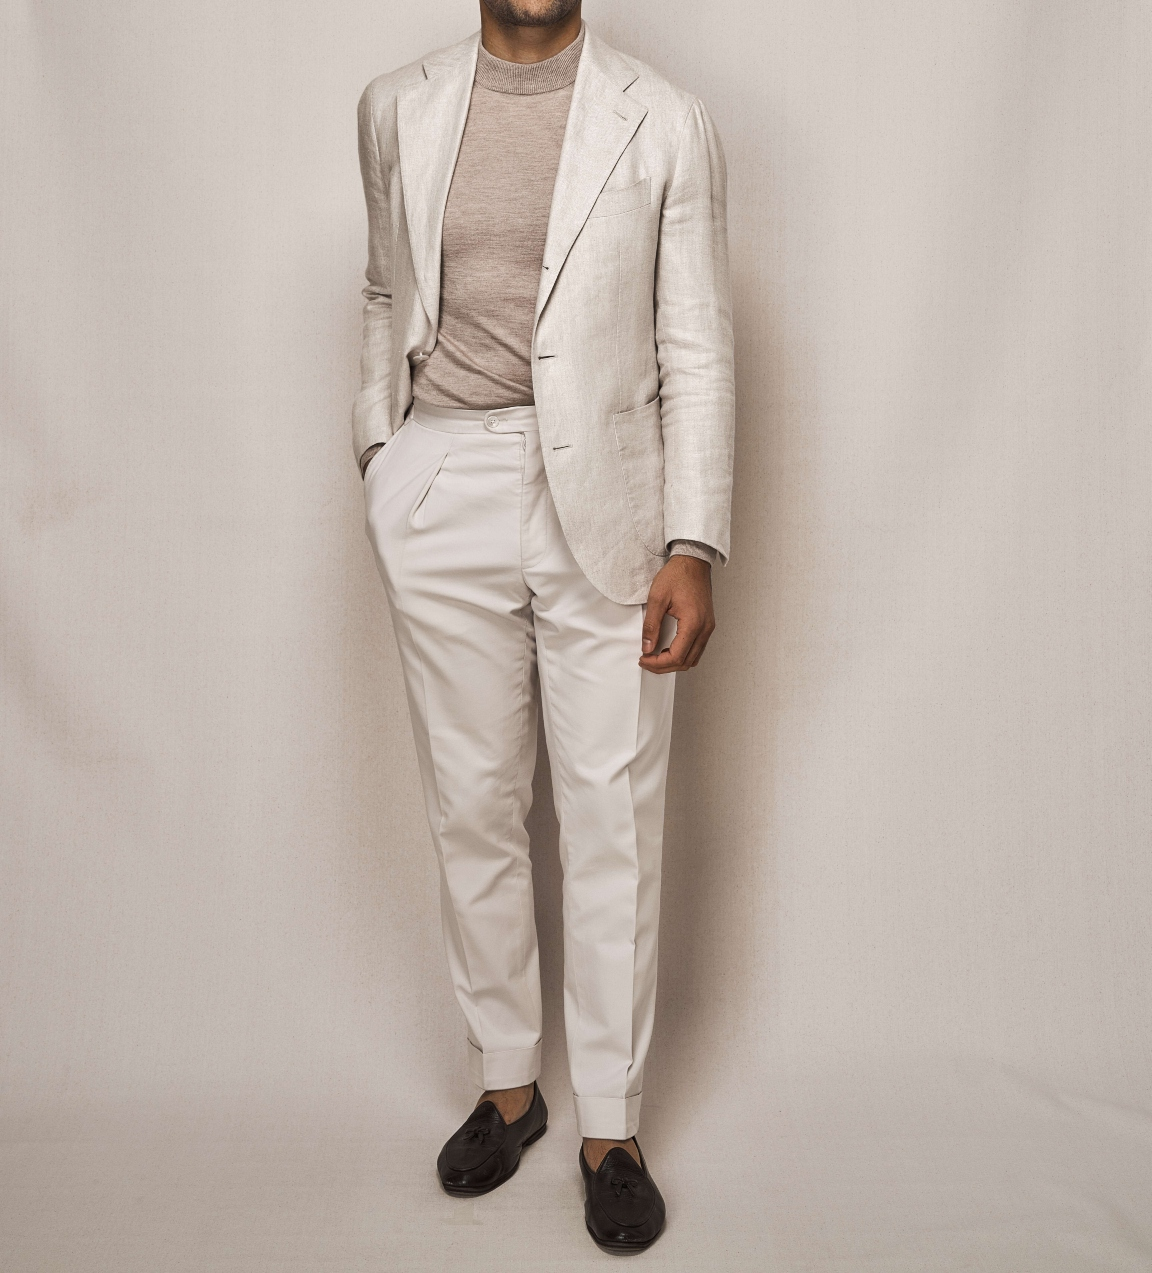 Man modelling a white linen day suit